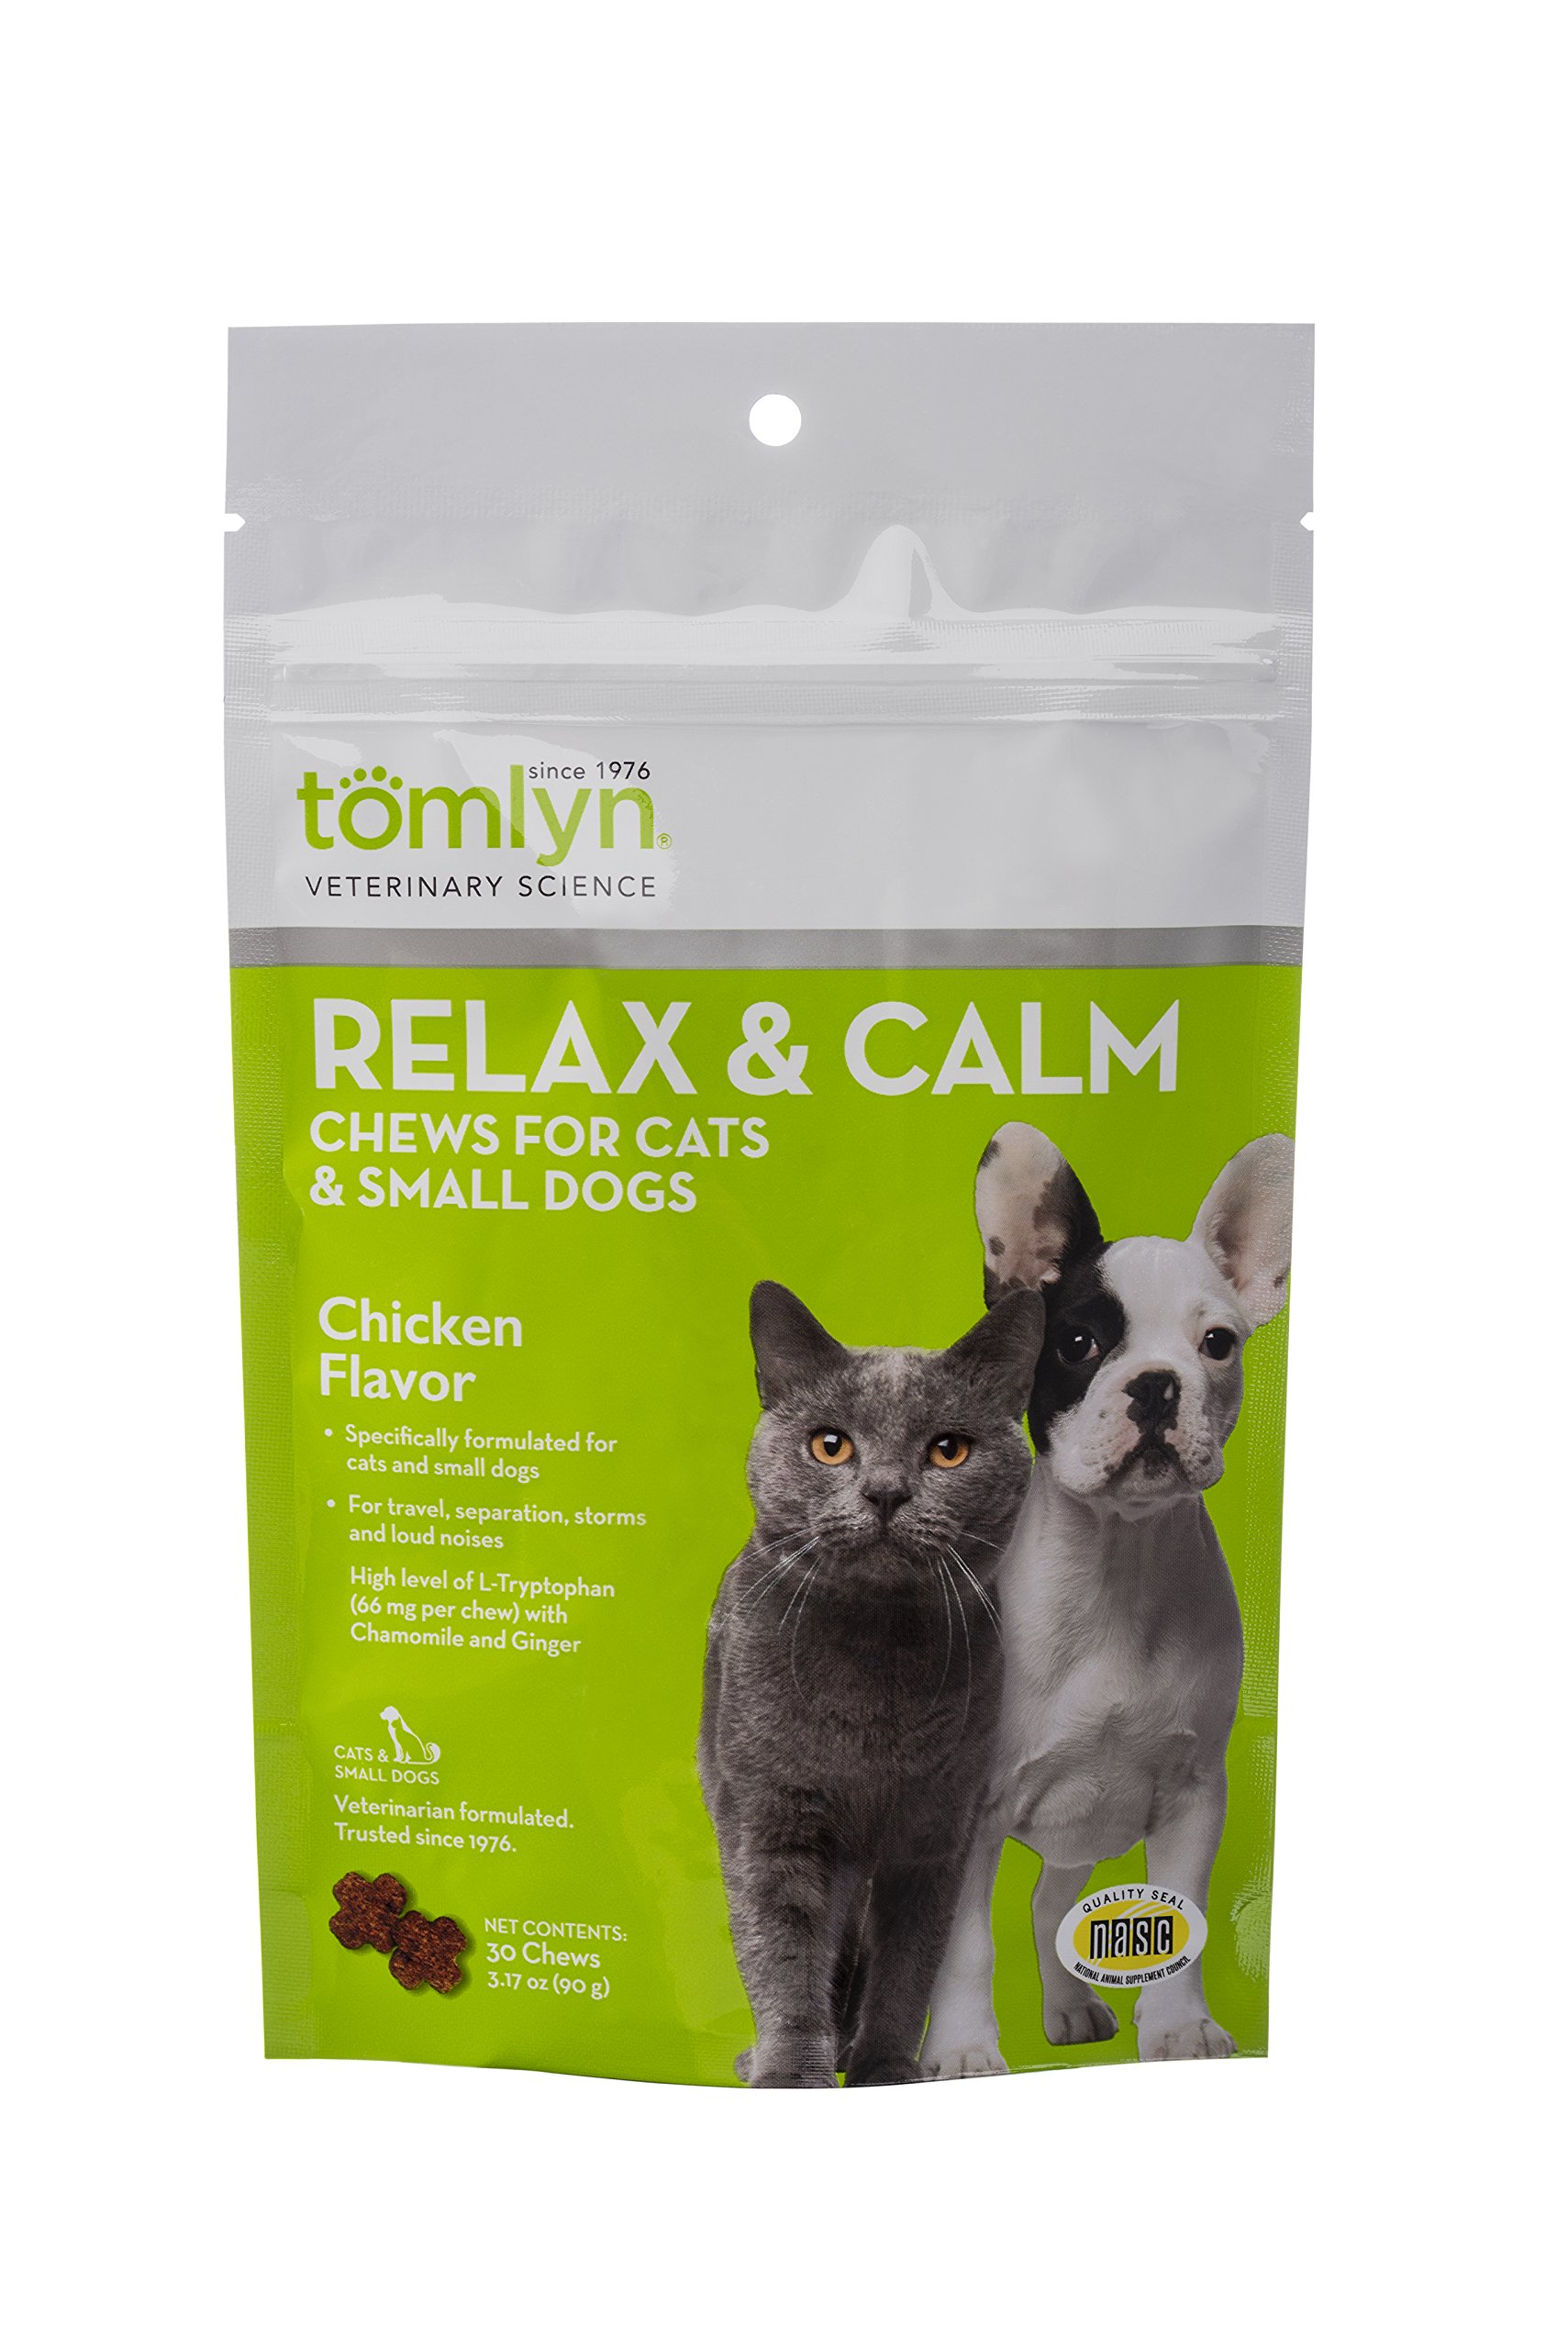 Tomlyn Relax and Calm Chews for Cats and Small Dogs 30ct.